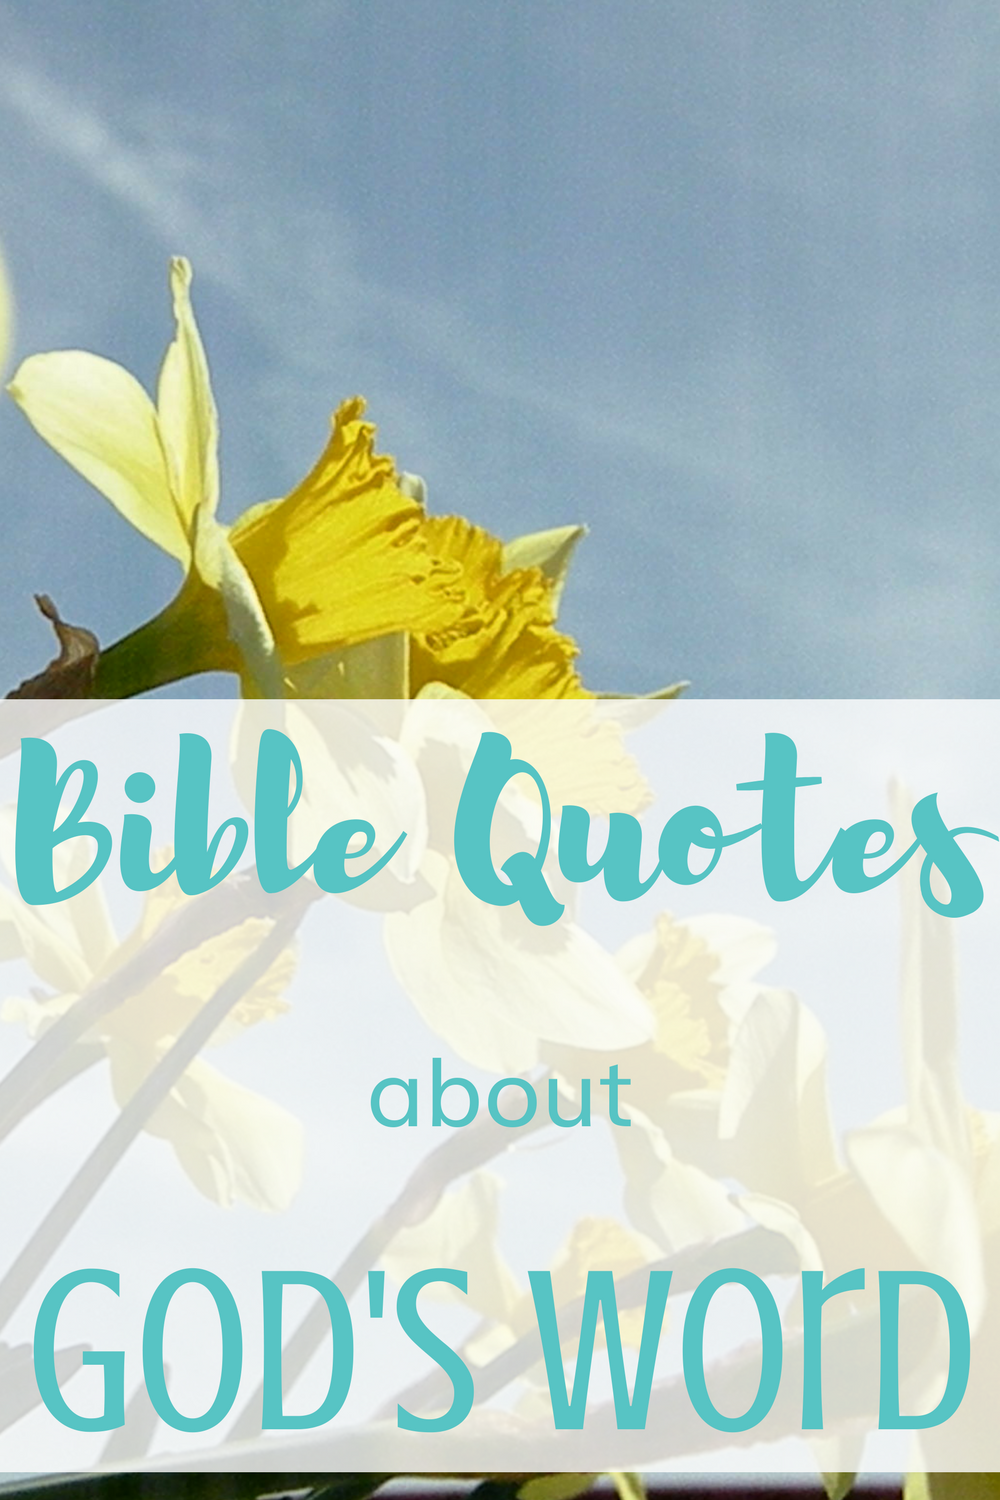 Bible quotes about God's Word for Christians